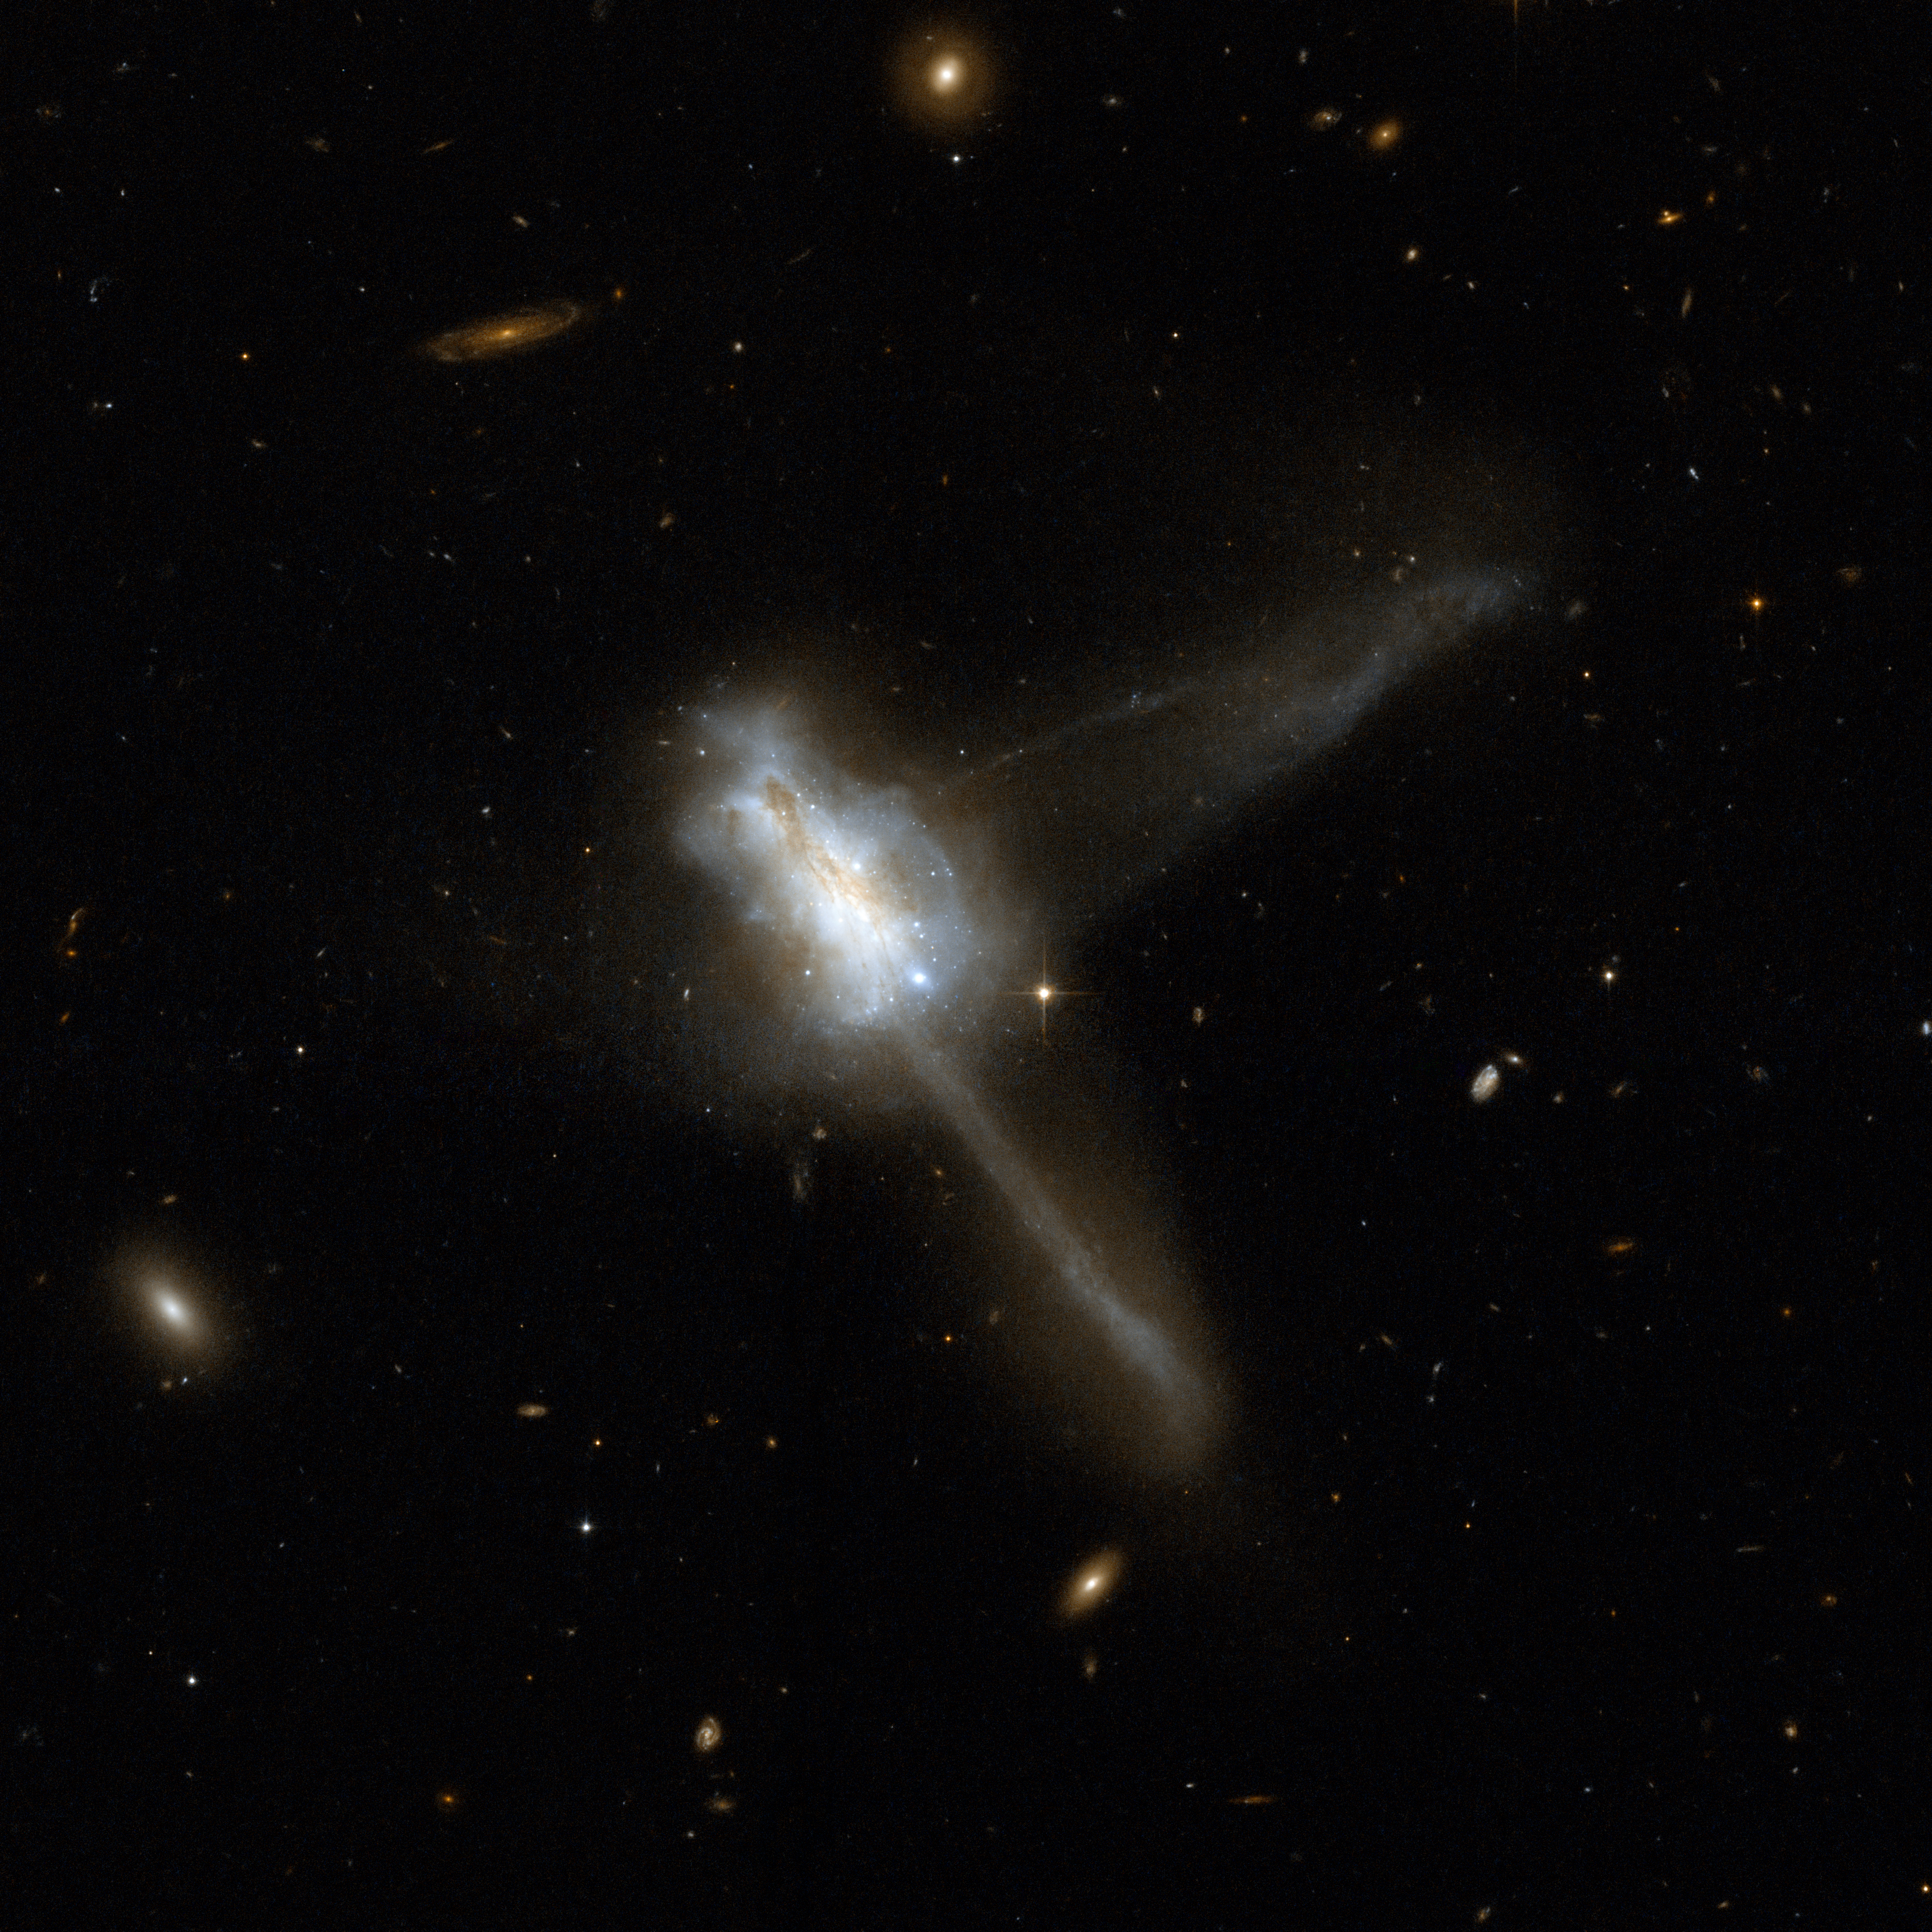 Hubble Interacting Galaxy IC 883 (2008-04-24)